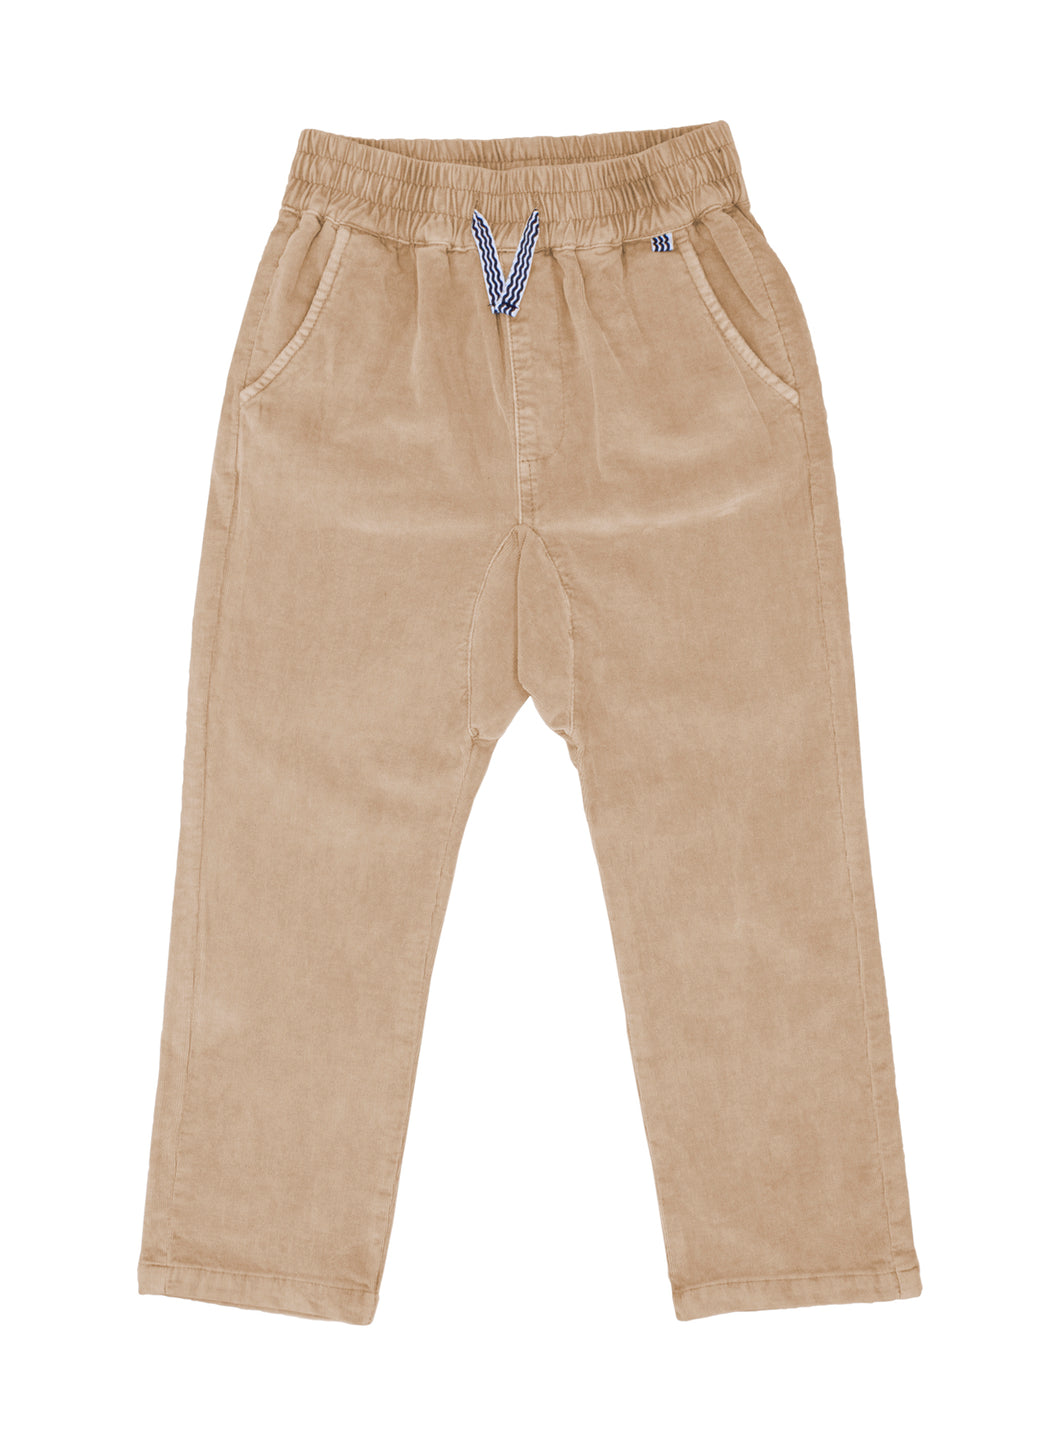 12yrs, 2yrs, 6yrs, 8yrs - Weekender Pin Wale Stretch Corduroy Pants (2 variant colors)